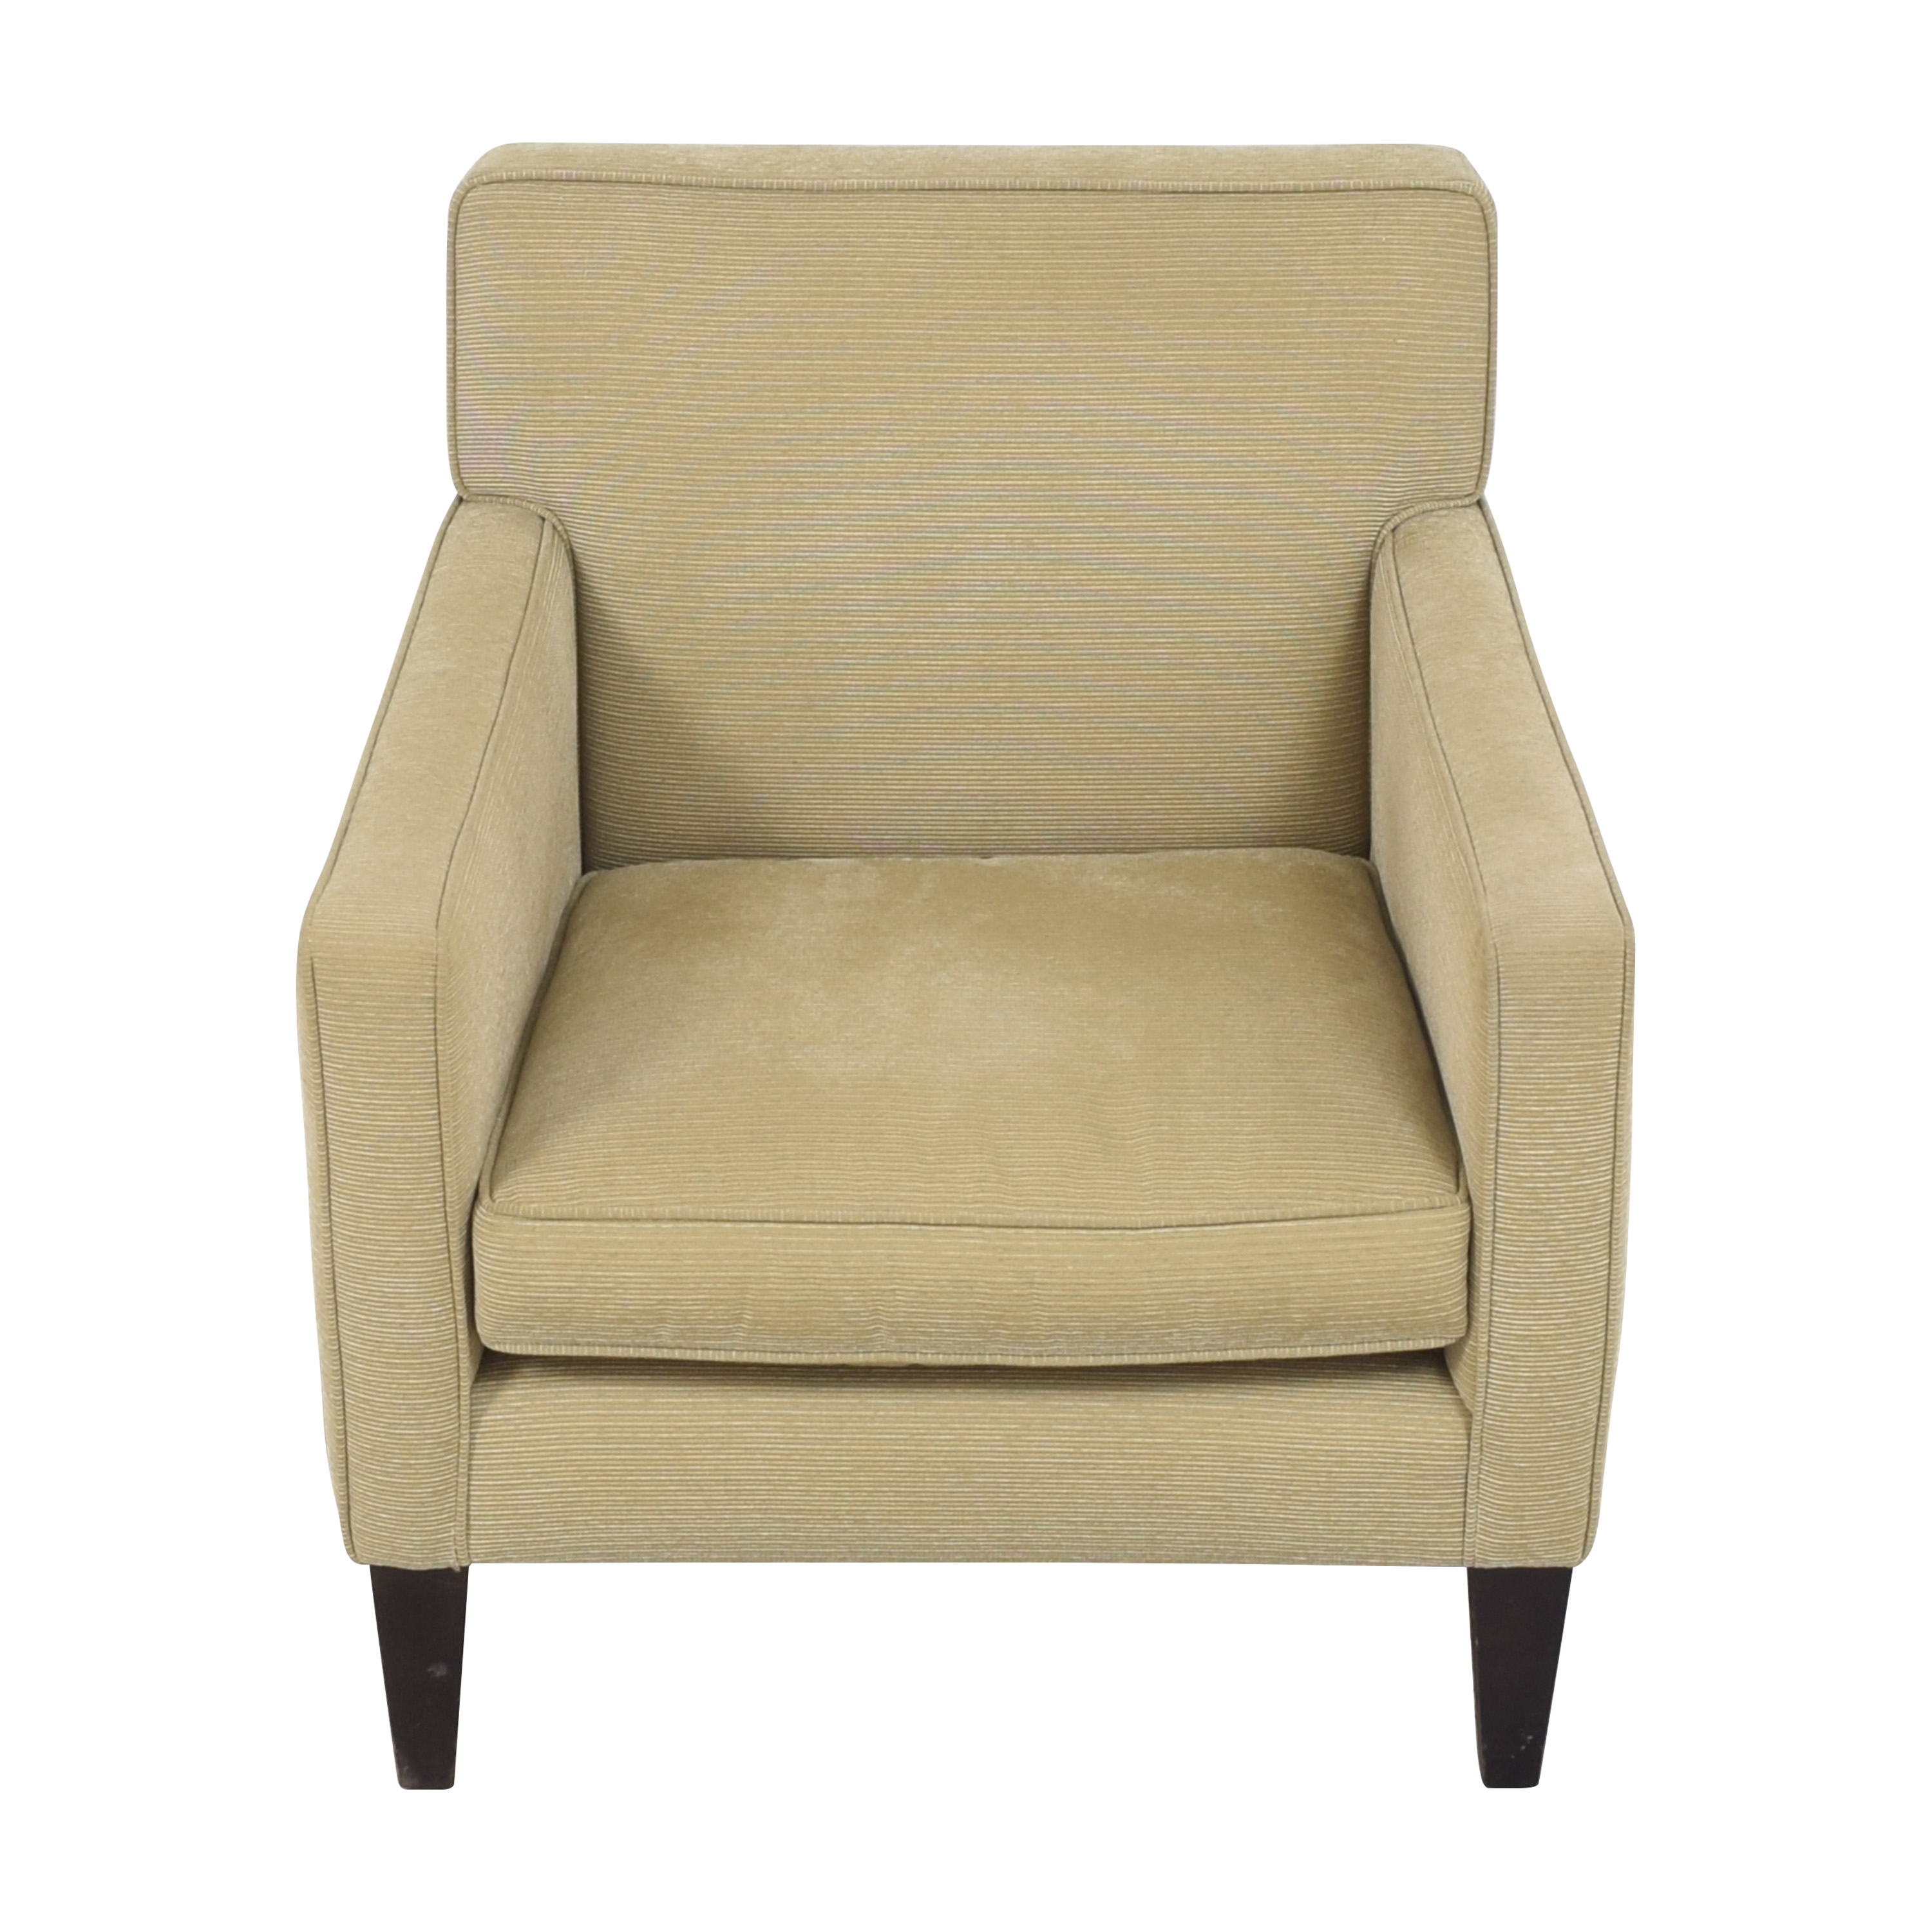 buy Crate & Barrel Crate & Barrel Tight Back Accent Chair online